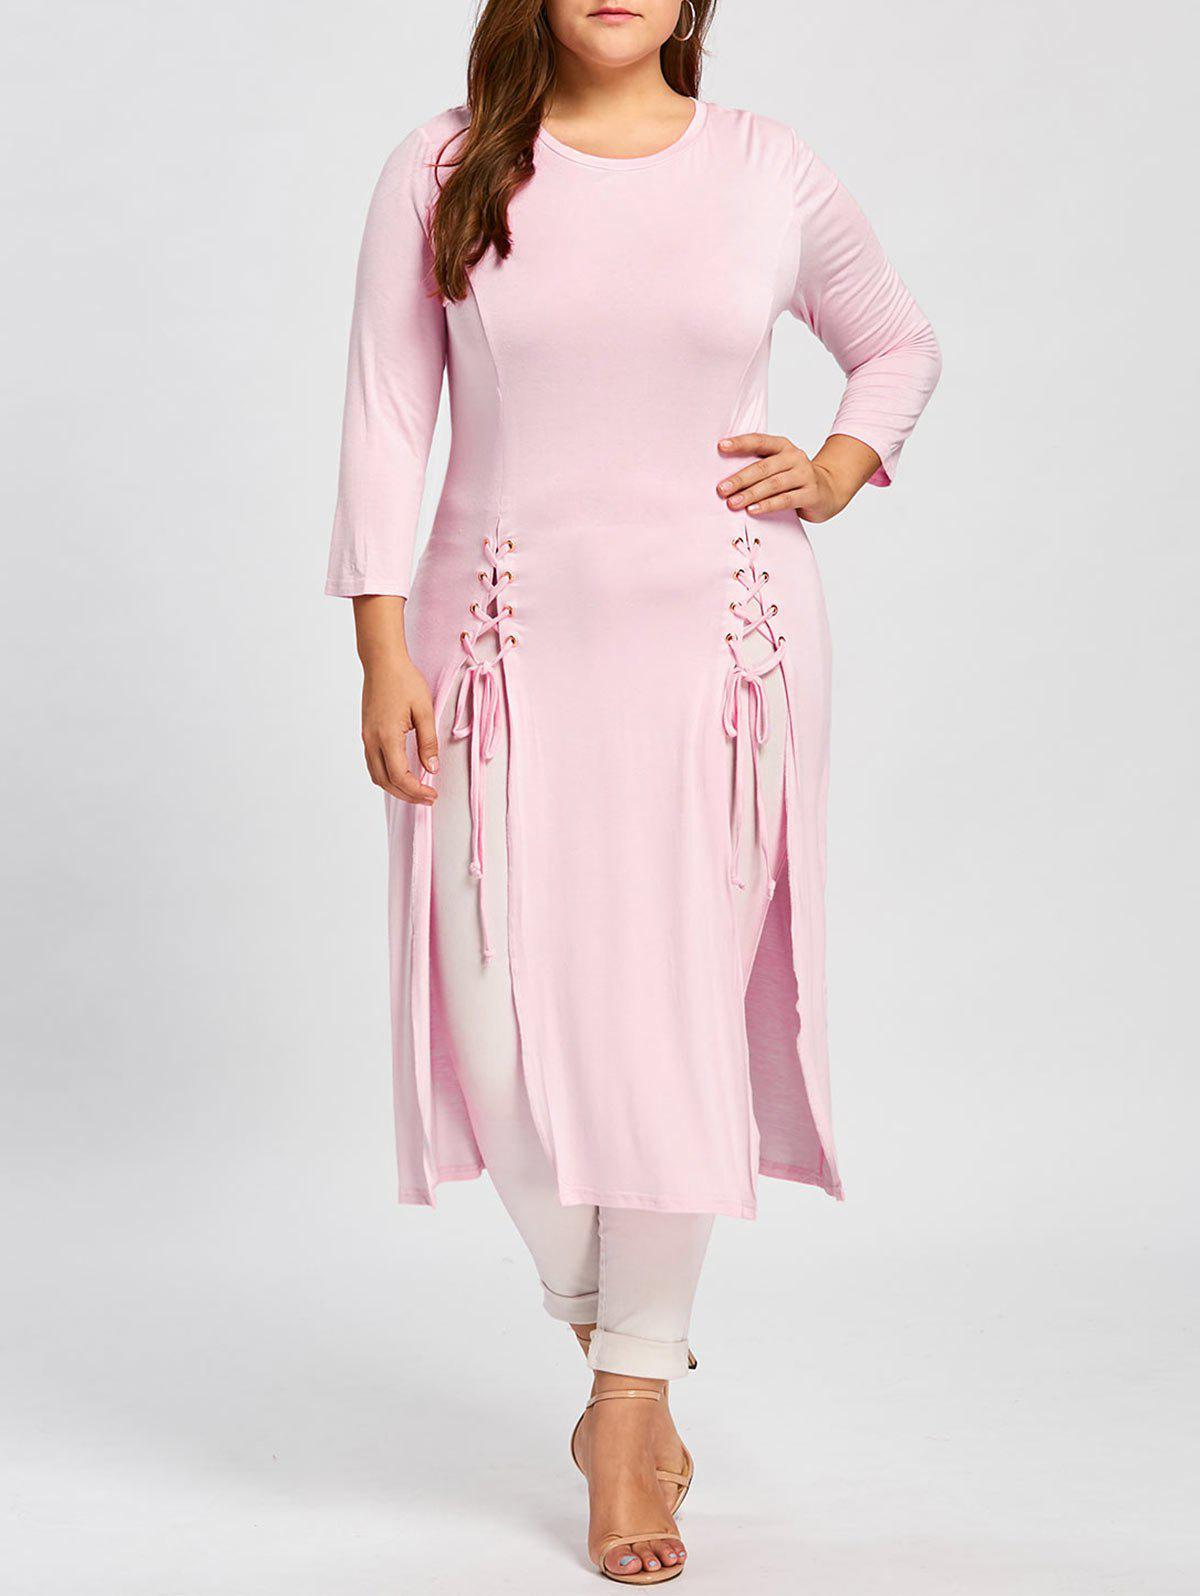 Maxi Lace-up Plus Size Long Sleeve DressWOMEN<br><br>Size: 5XL; Color: PINK; Style: Casual; Material: Polyester,Spandex; Silhouette: Straight; Dresses Length: Knee-Length; Neckline: Round Collar; Sleeve Length: Long Sleeves; Pattern Type: Solid; With Belt: No; Season: Fall,Spring; Weight: 0.4200kg; Package Contents: 1 x Dress;